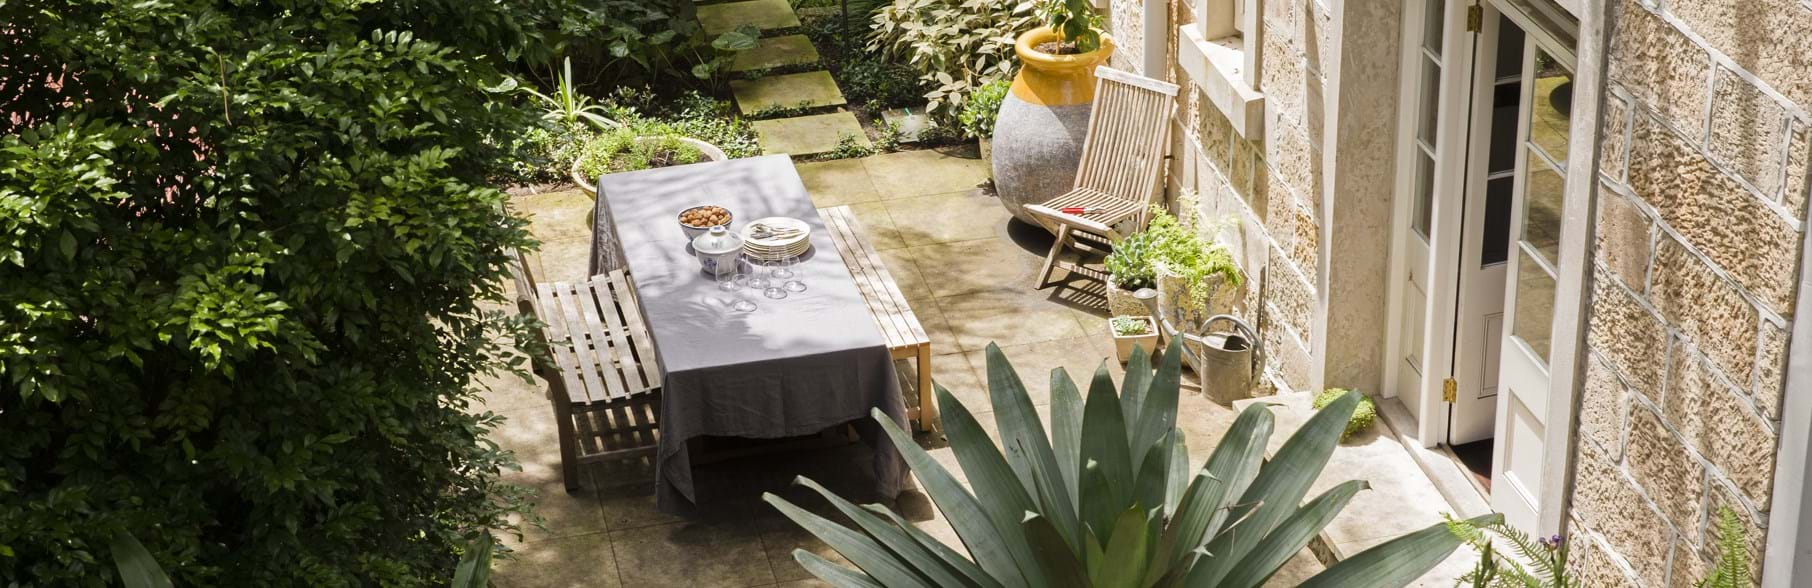 Showcasing the best in outdoor design